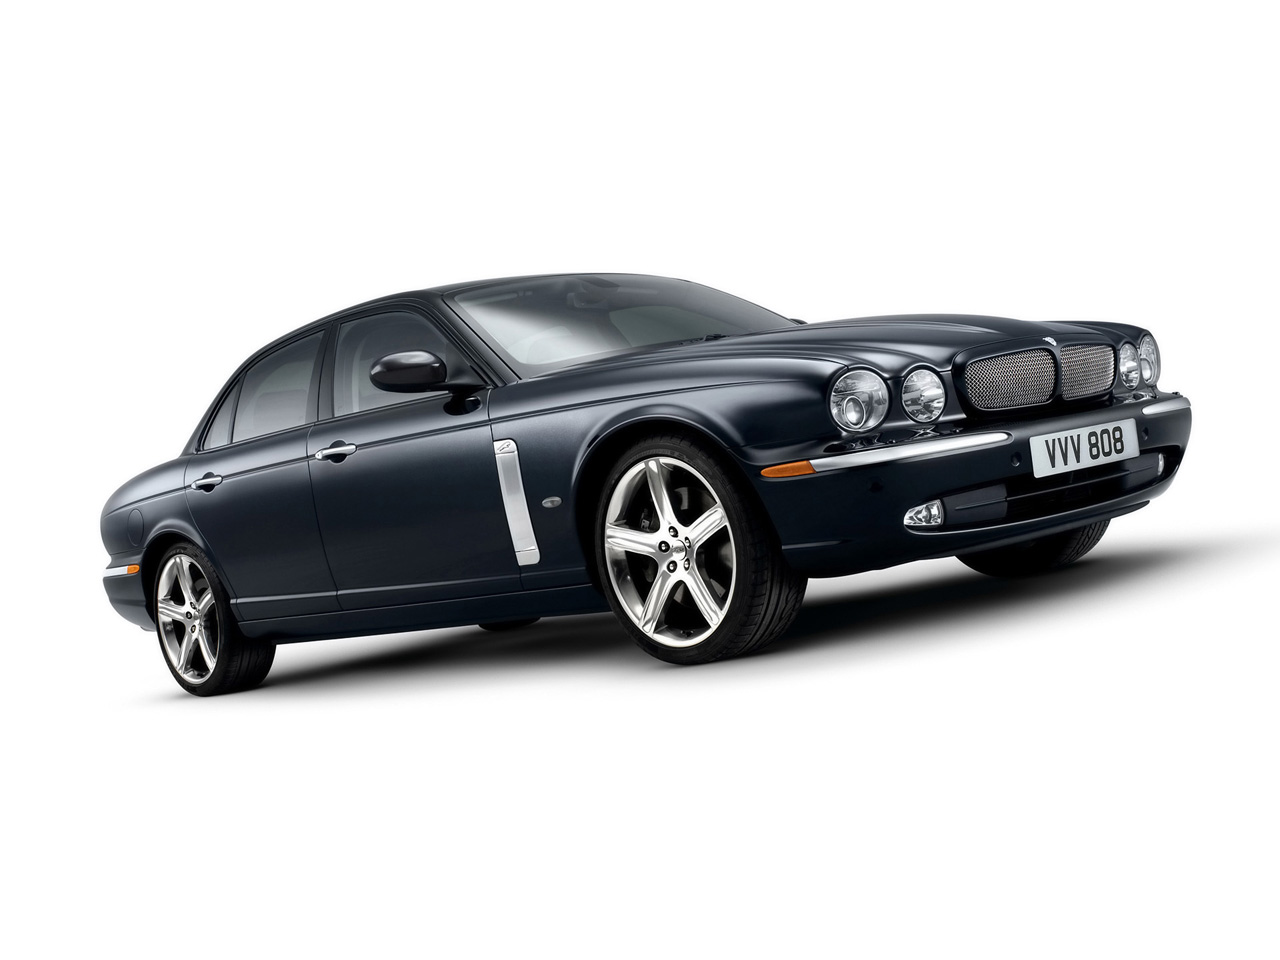 2007 jaguar xjr portfolio pictures history value research news conceptcarz com